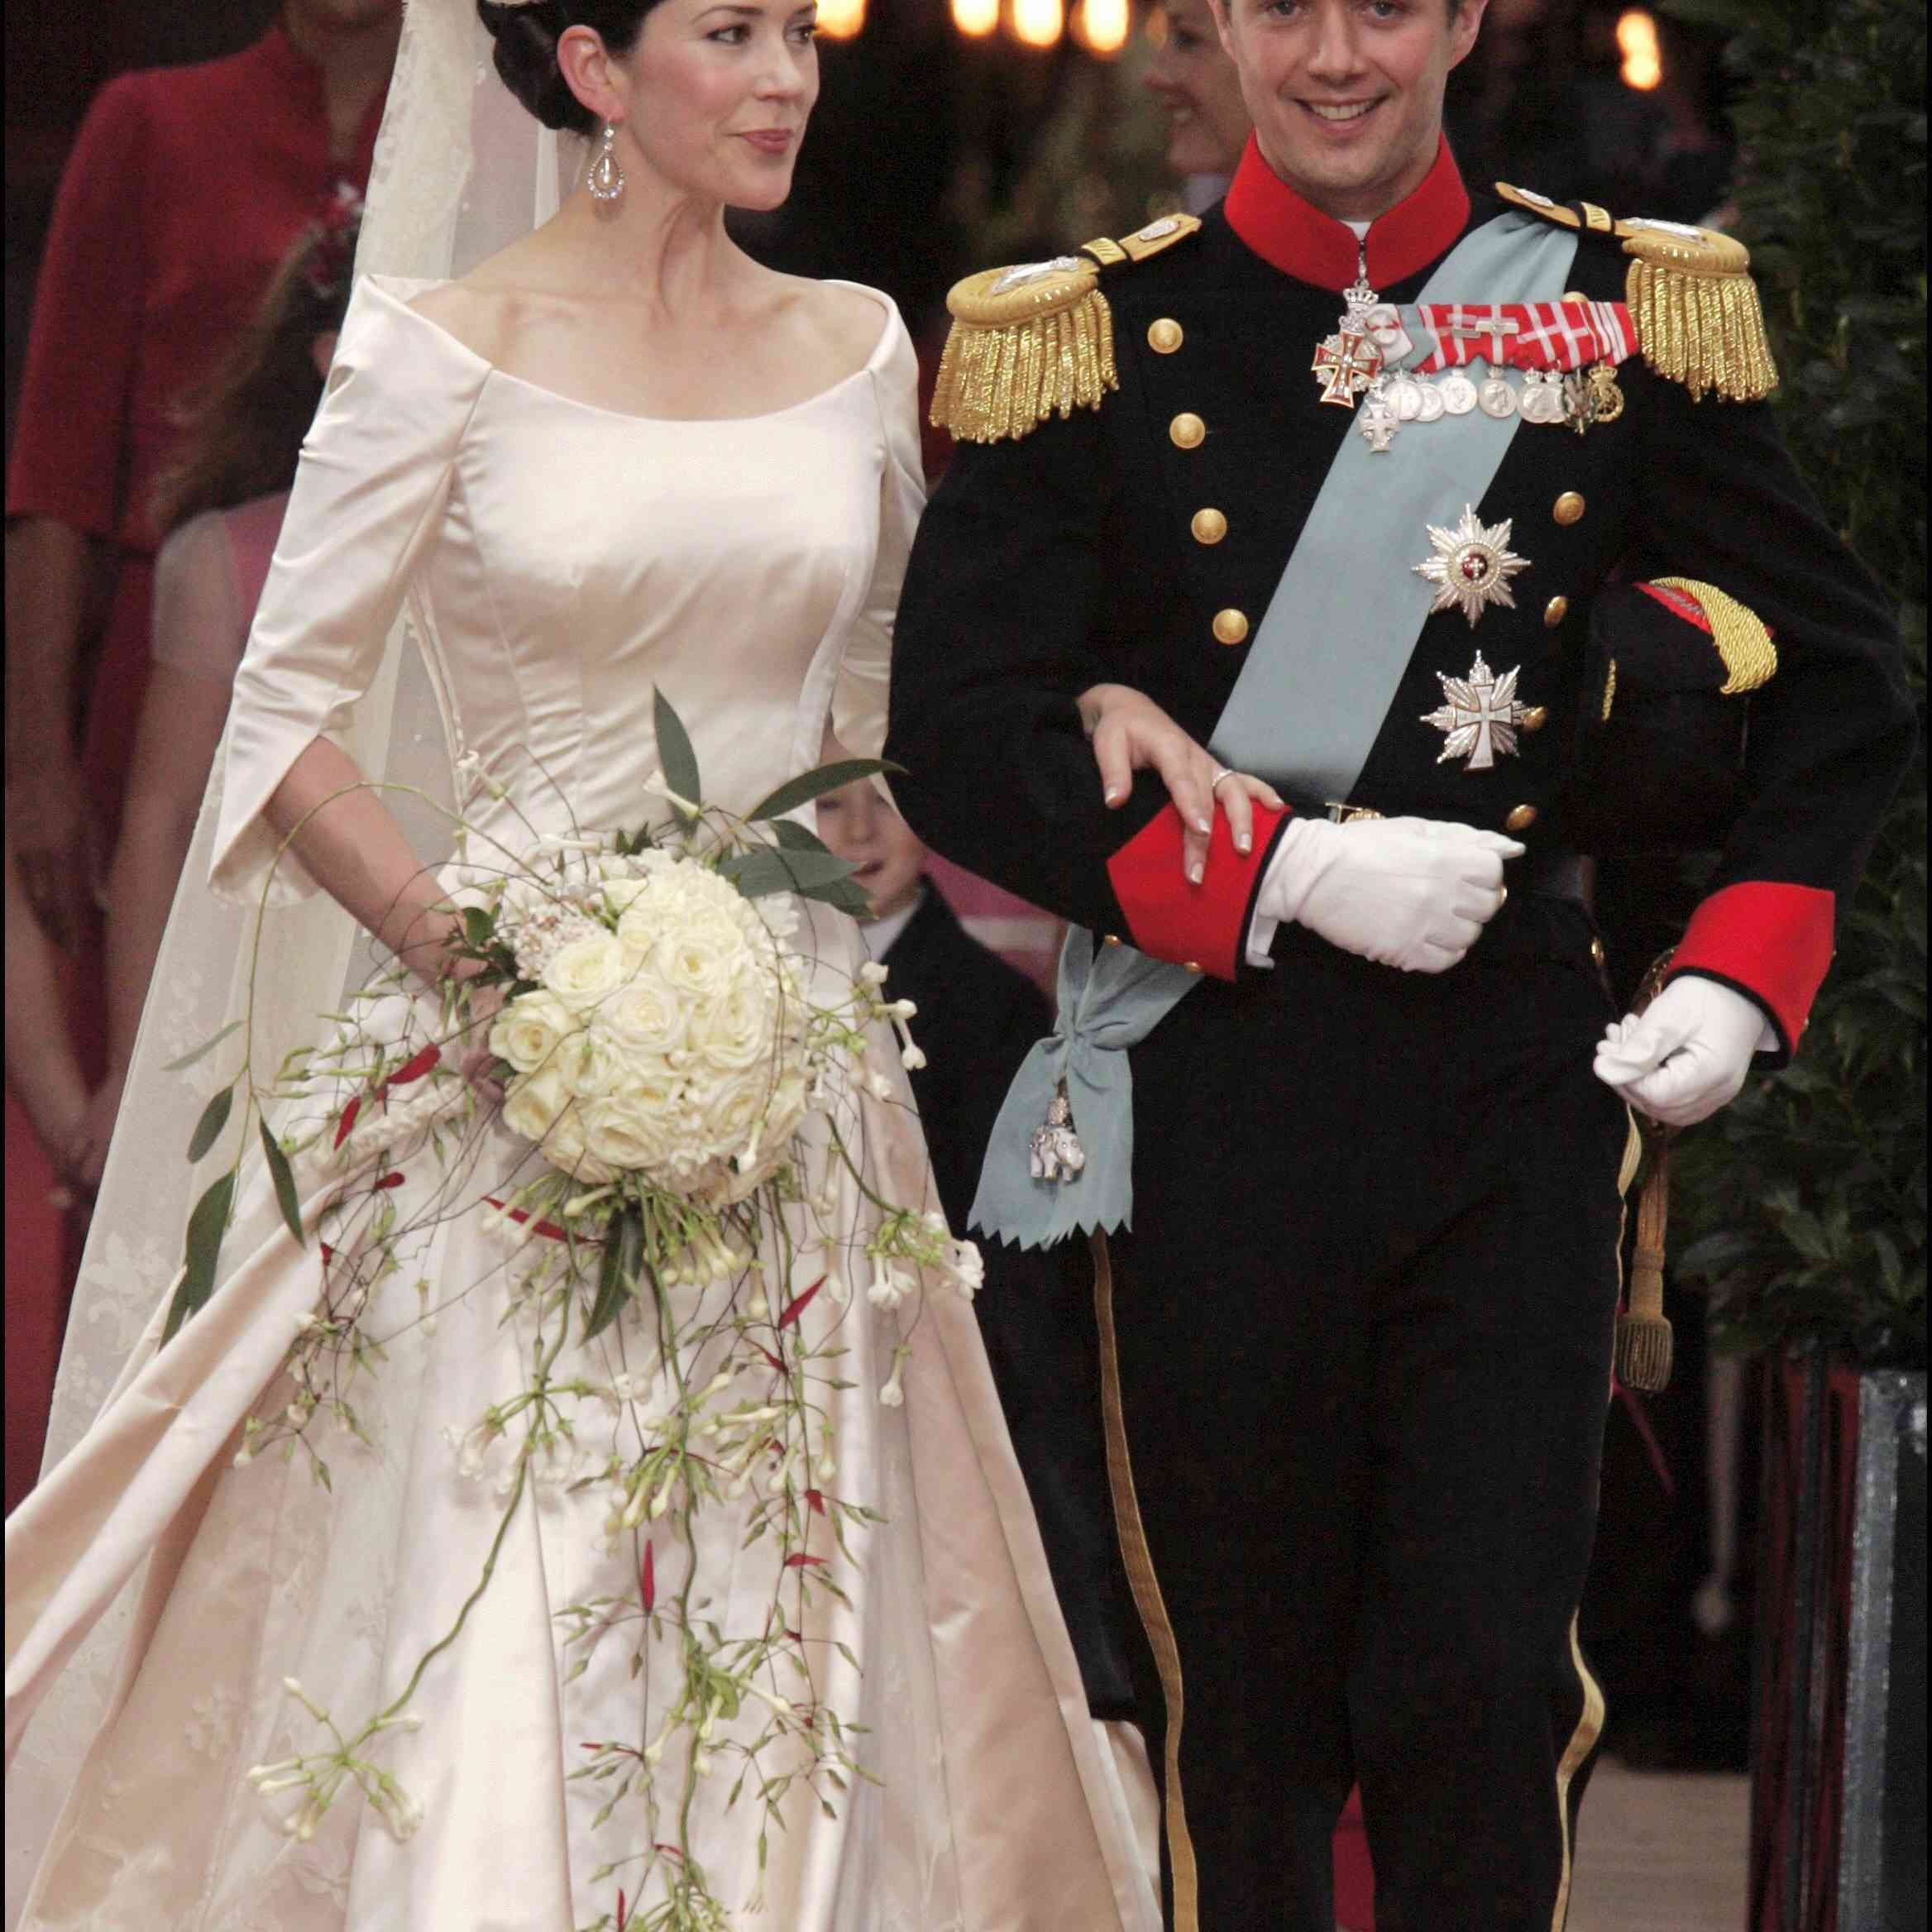 36 royal wedding bouquets throughout history 36 royal wedding bouquets throughout